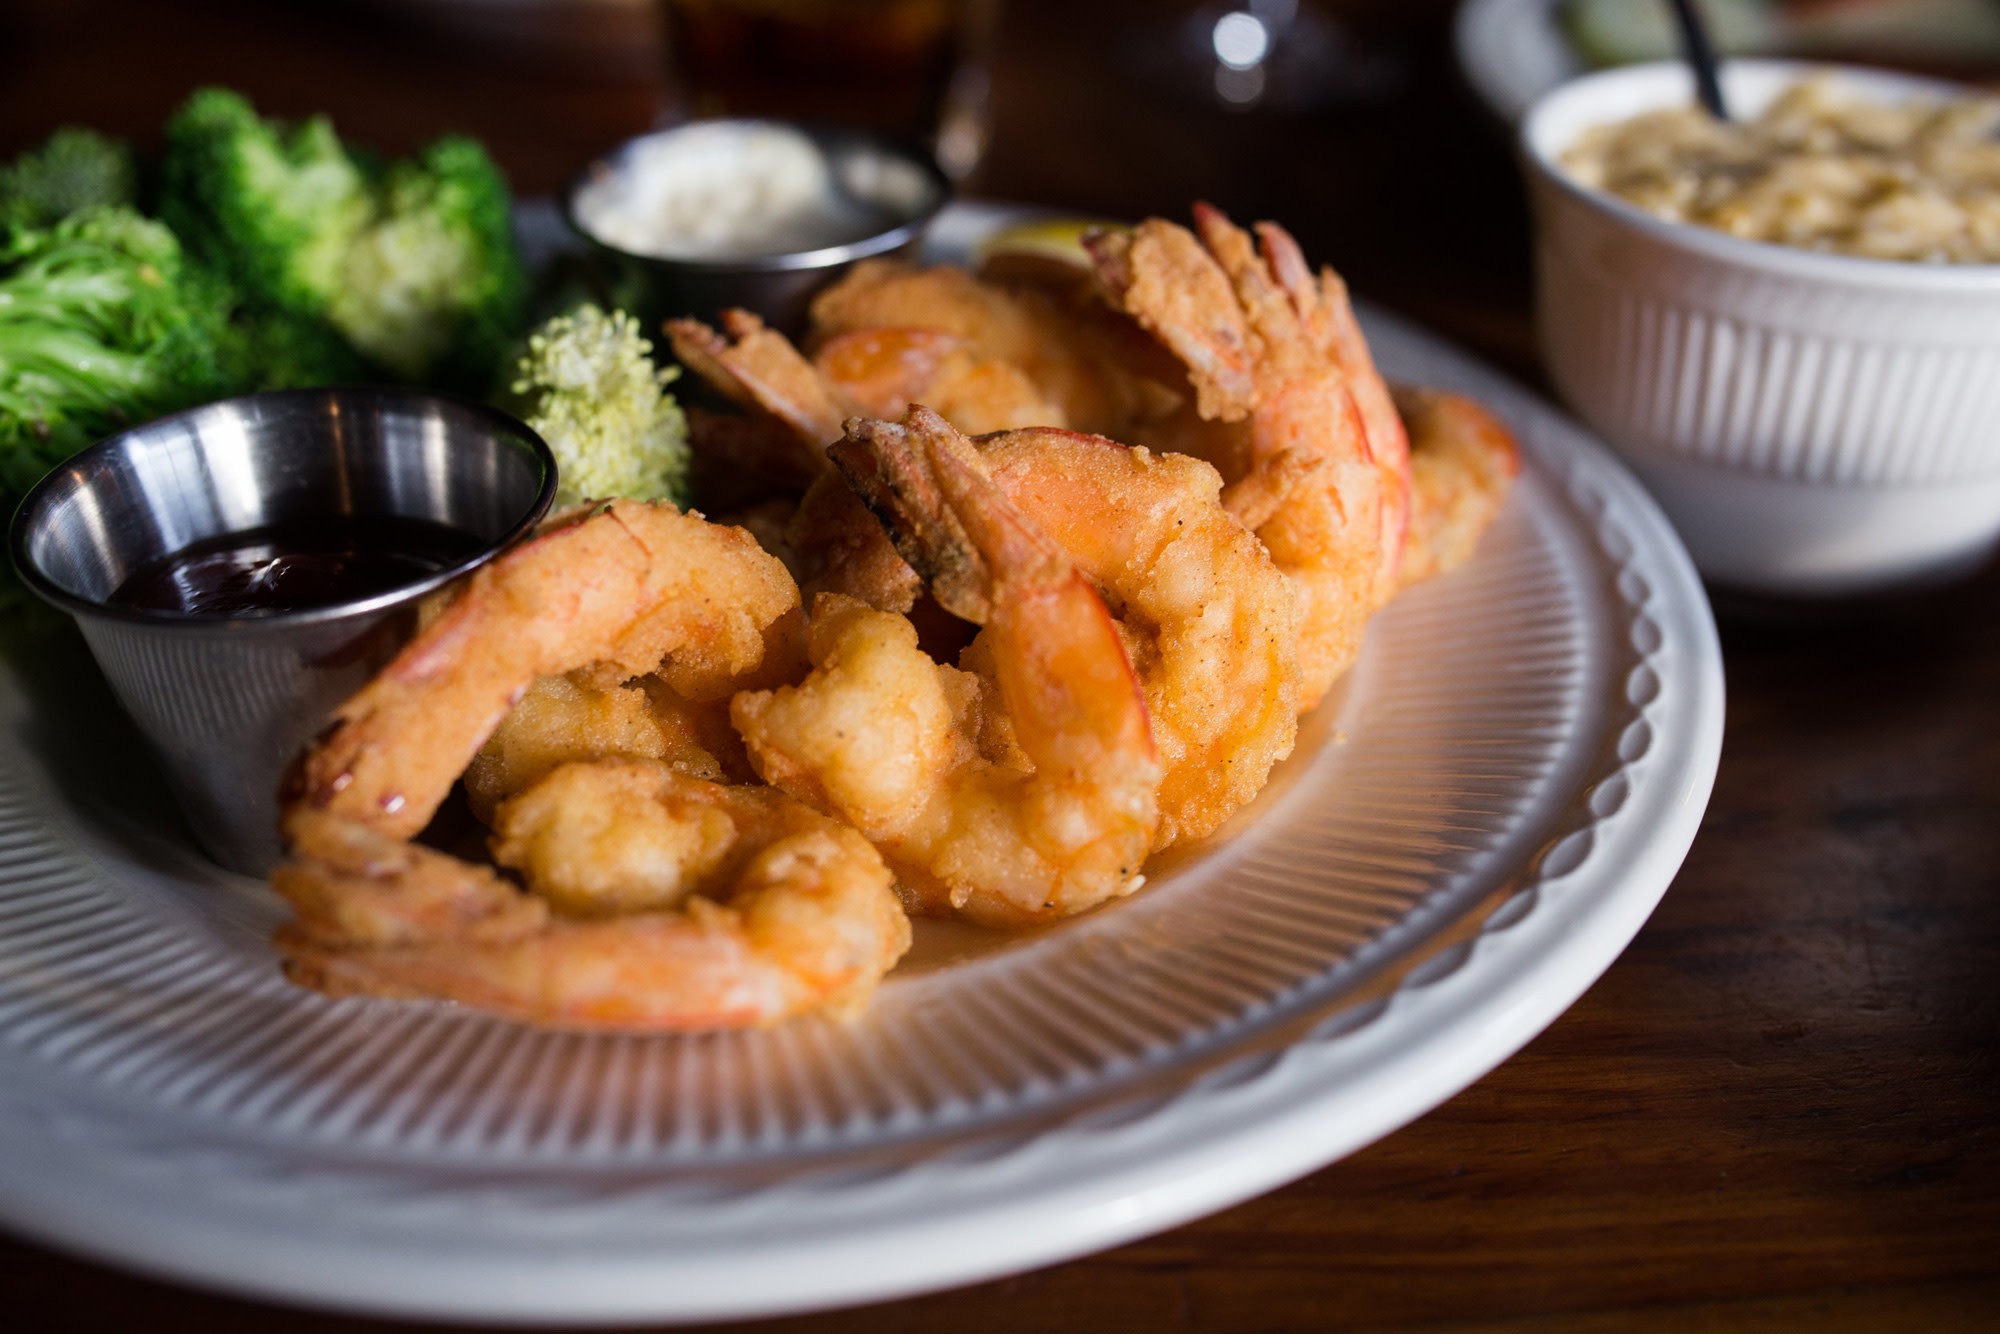 Fried shrimp at Crabdaddy's Seafood Grill on St. Simons Island